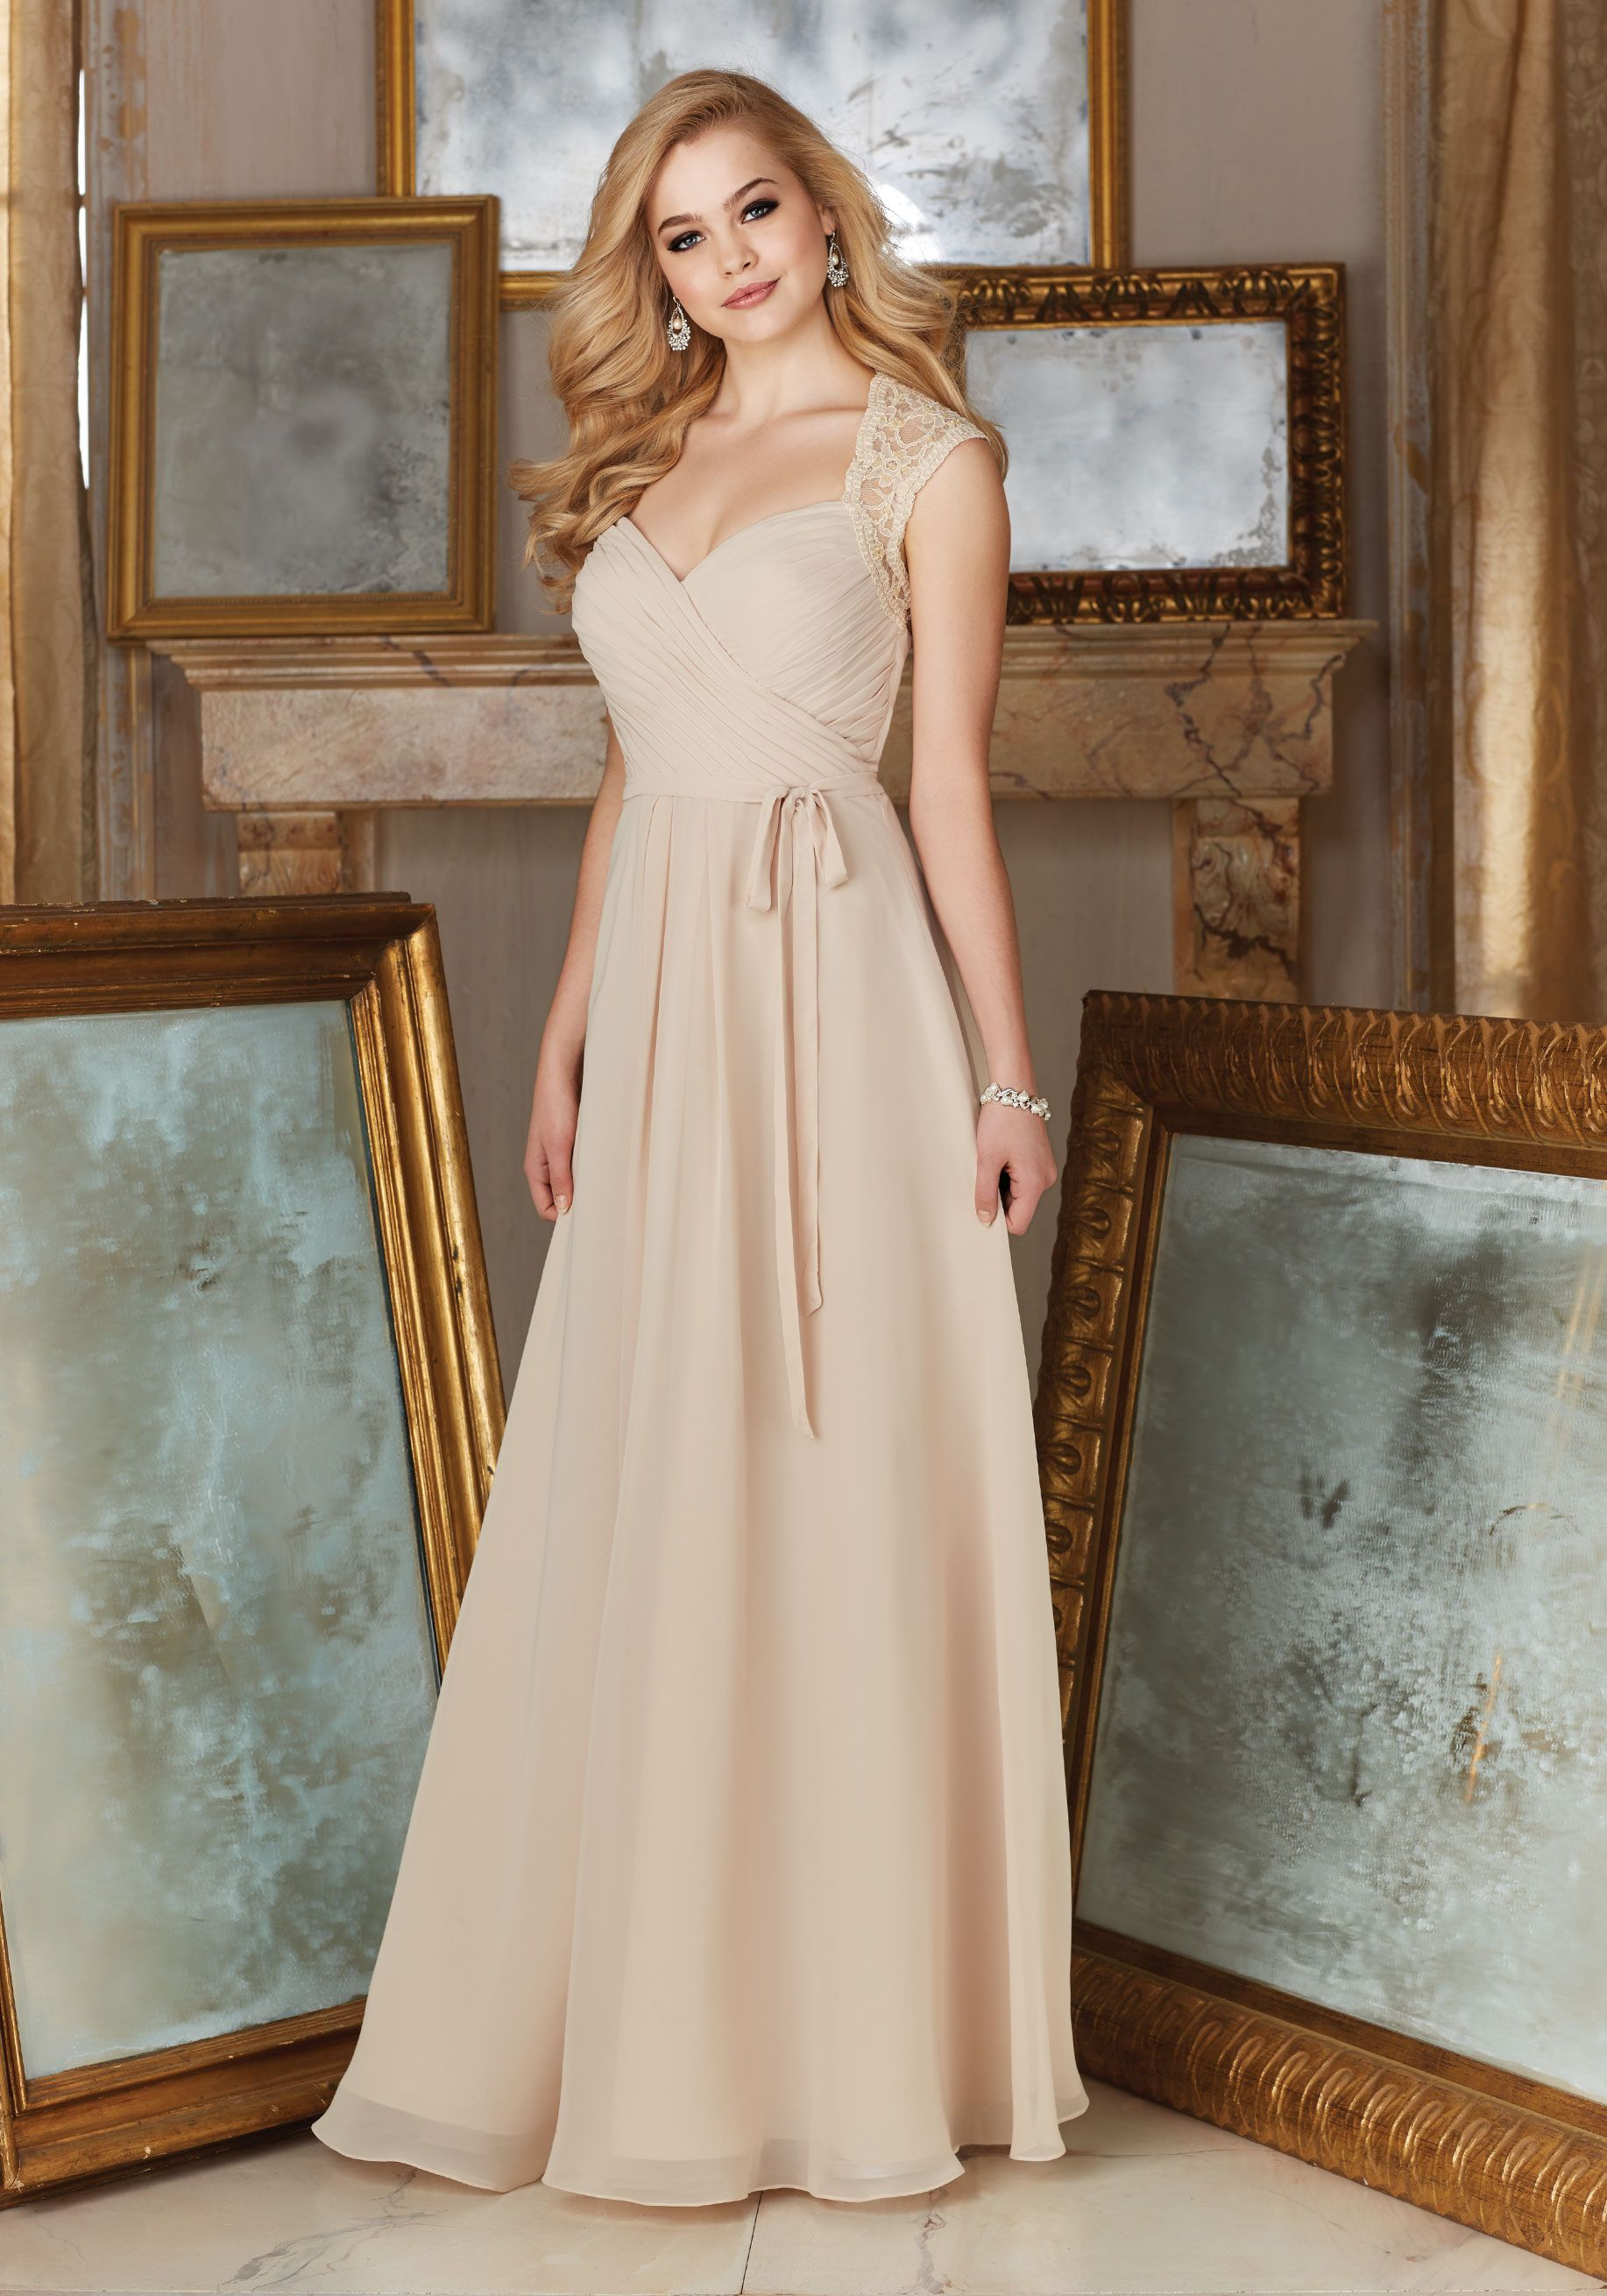 Beaded lace and chiffon material bridesmaid dress designed by beaded lace and chiffon material bridesmaid dress designed by madeline gardner matching tie sash included ombrellifo Gallery